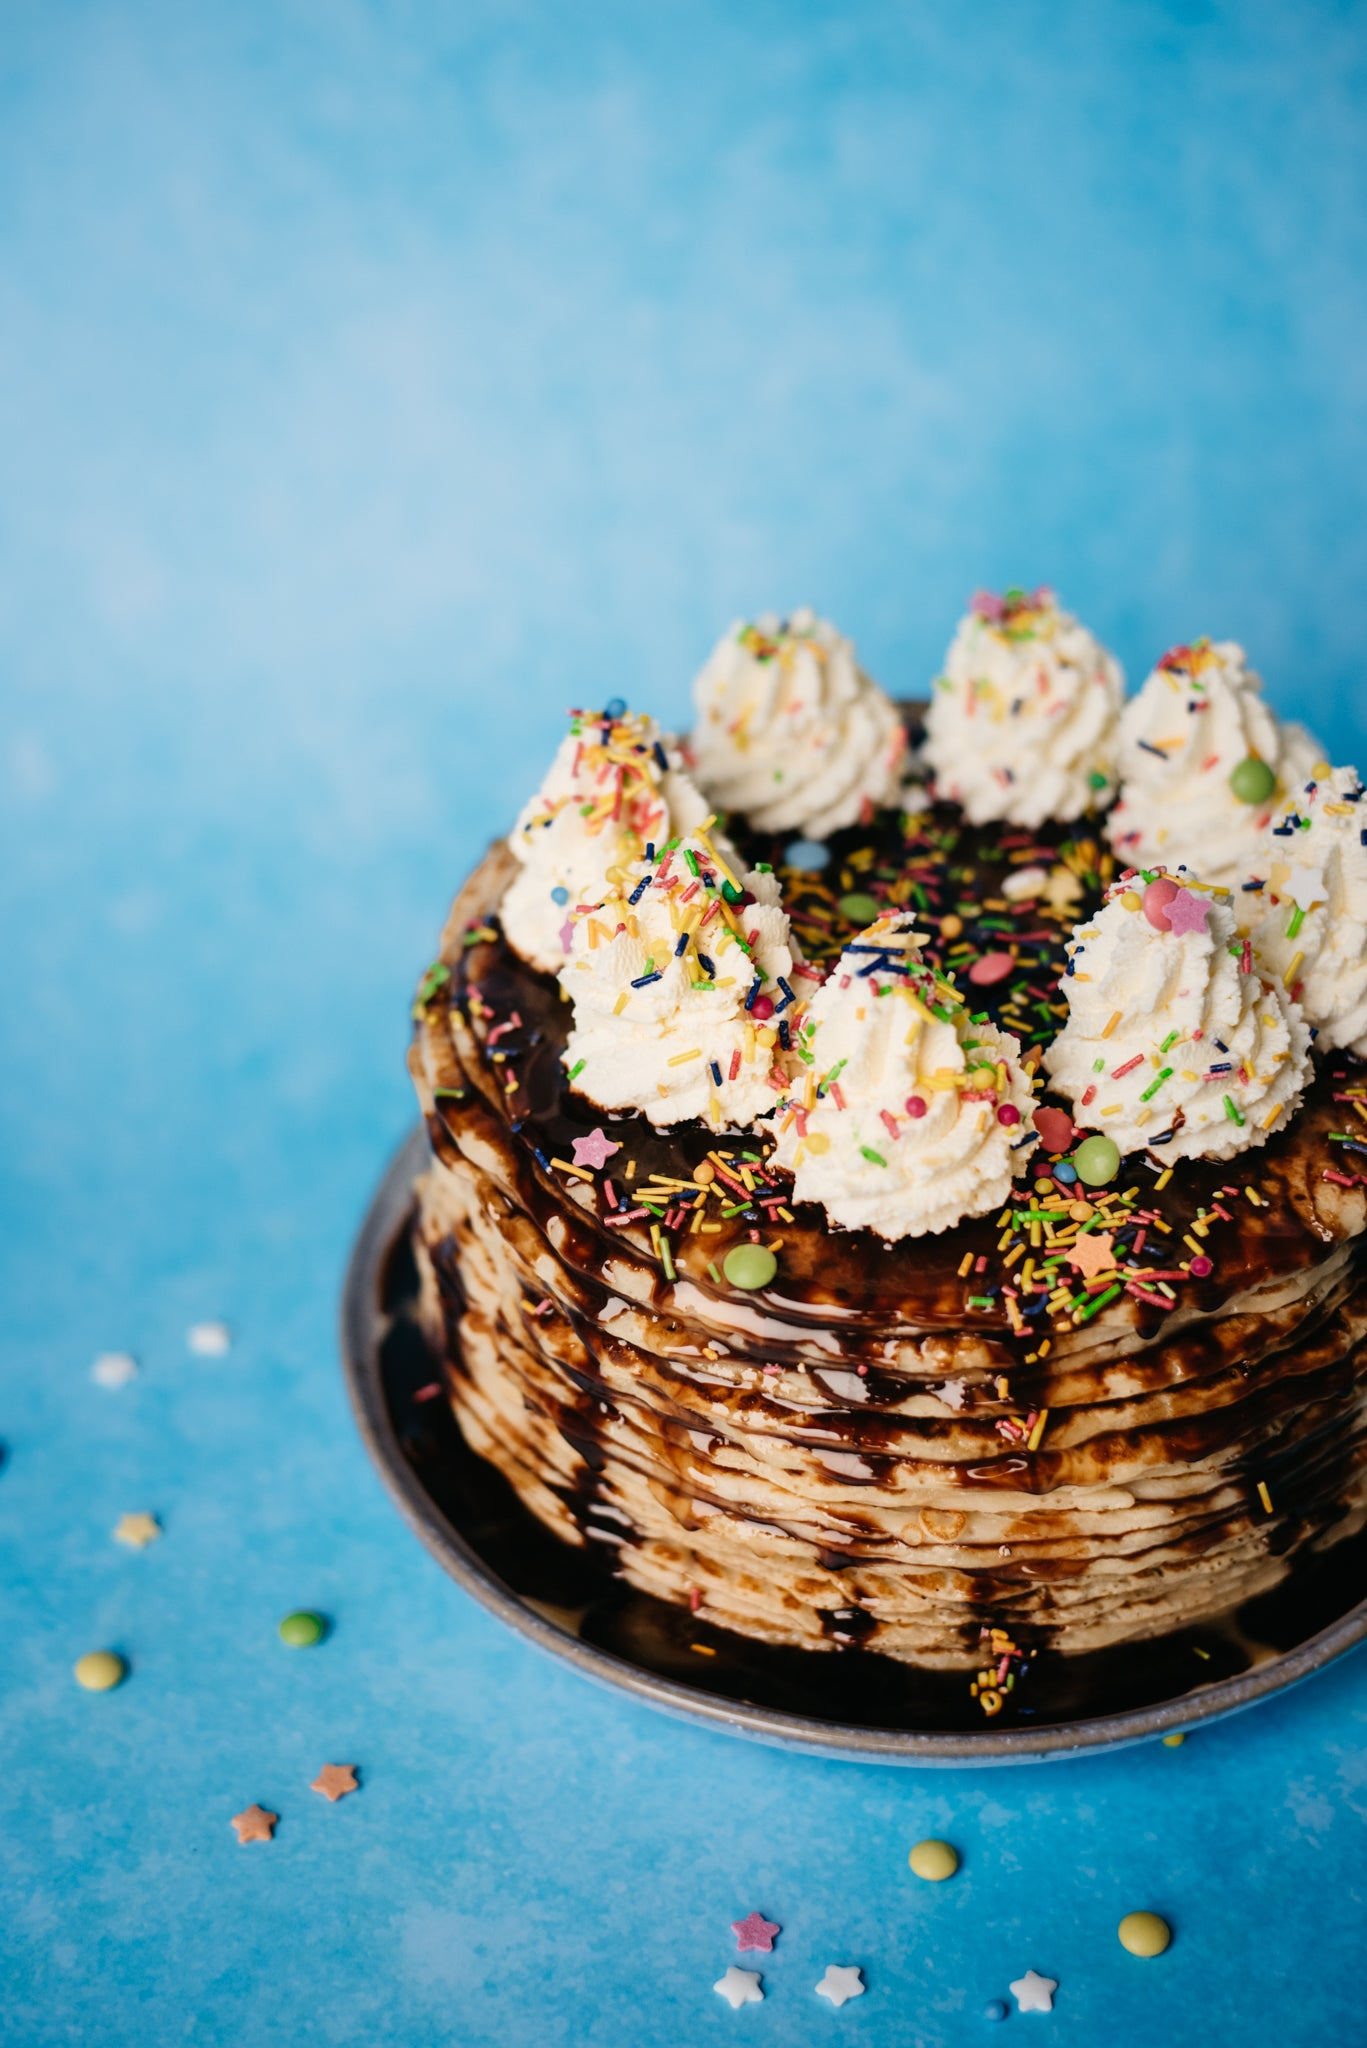 Tower of crepes in cake, covered in chocolate sauce, sprinkles and whipped cream